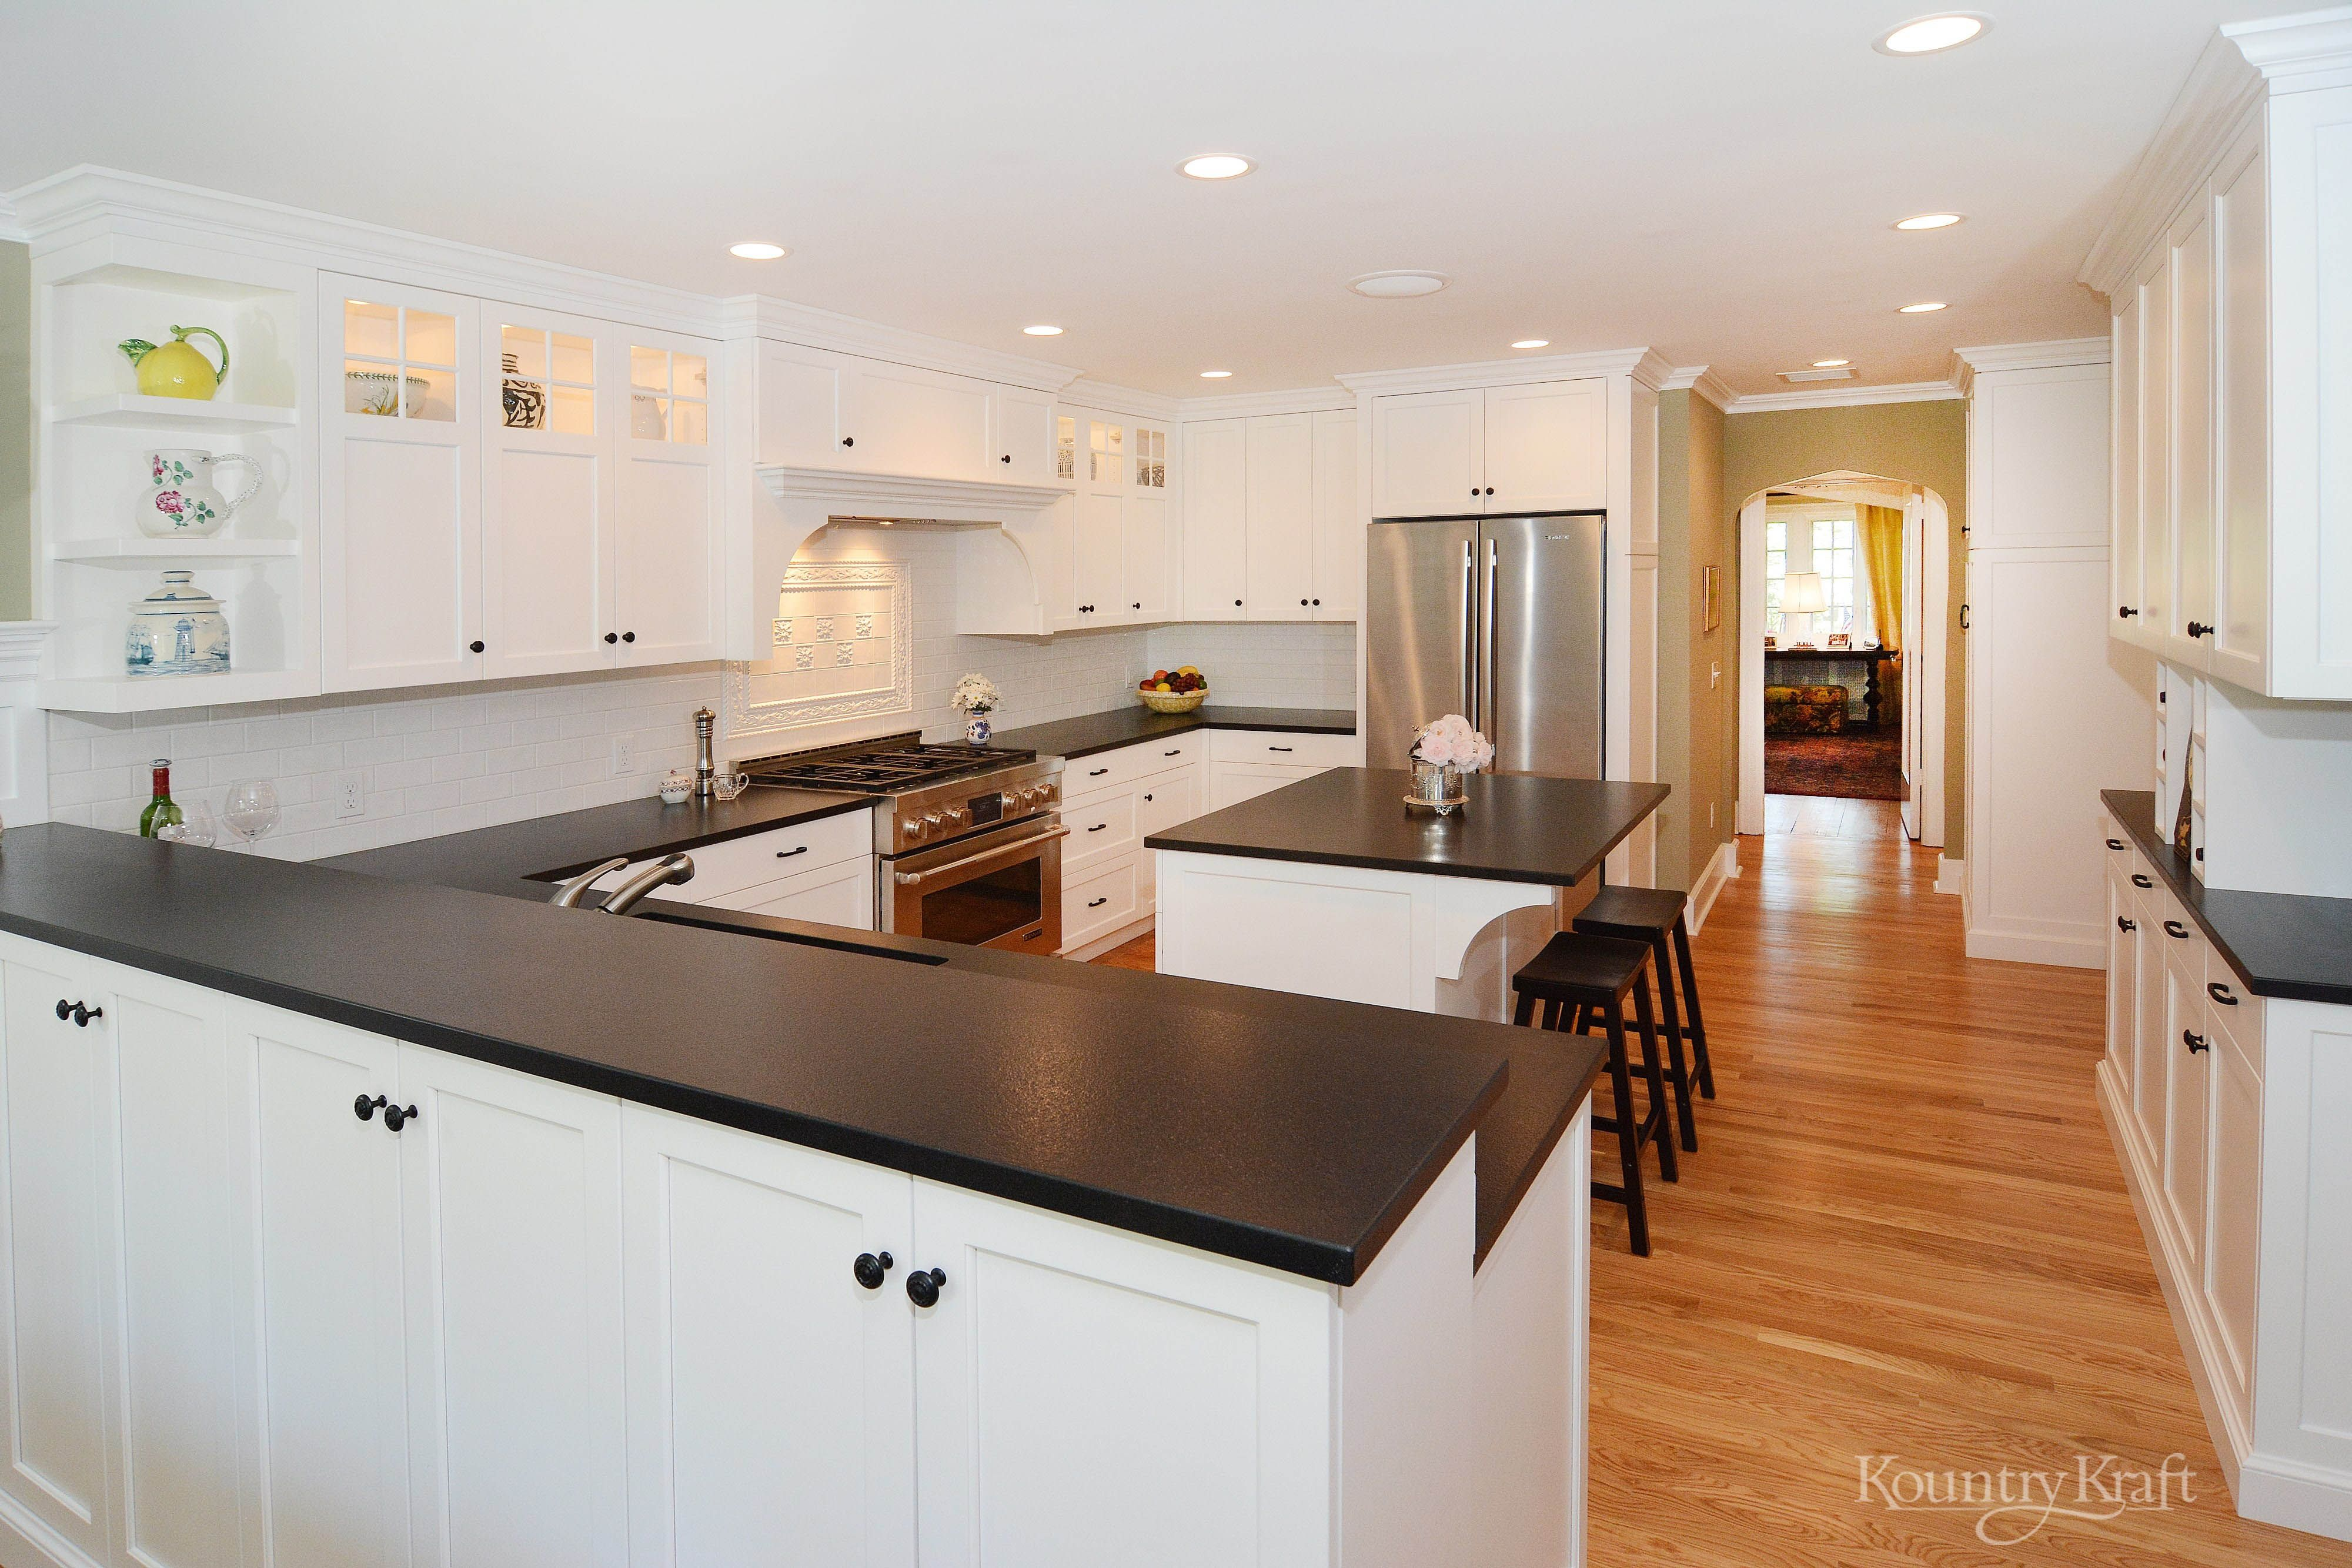 Custom Kitchen Cabinets Designed By Justin Sachs Of Stonington Cabinetry Designs In Mad Kitchen Cabinetry Design Kitchen Design Small Custom Kitchen Cabinets